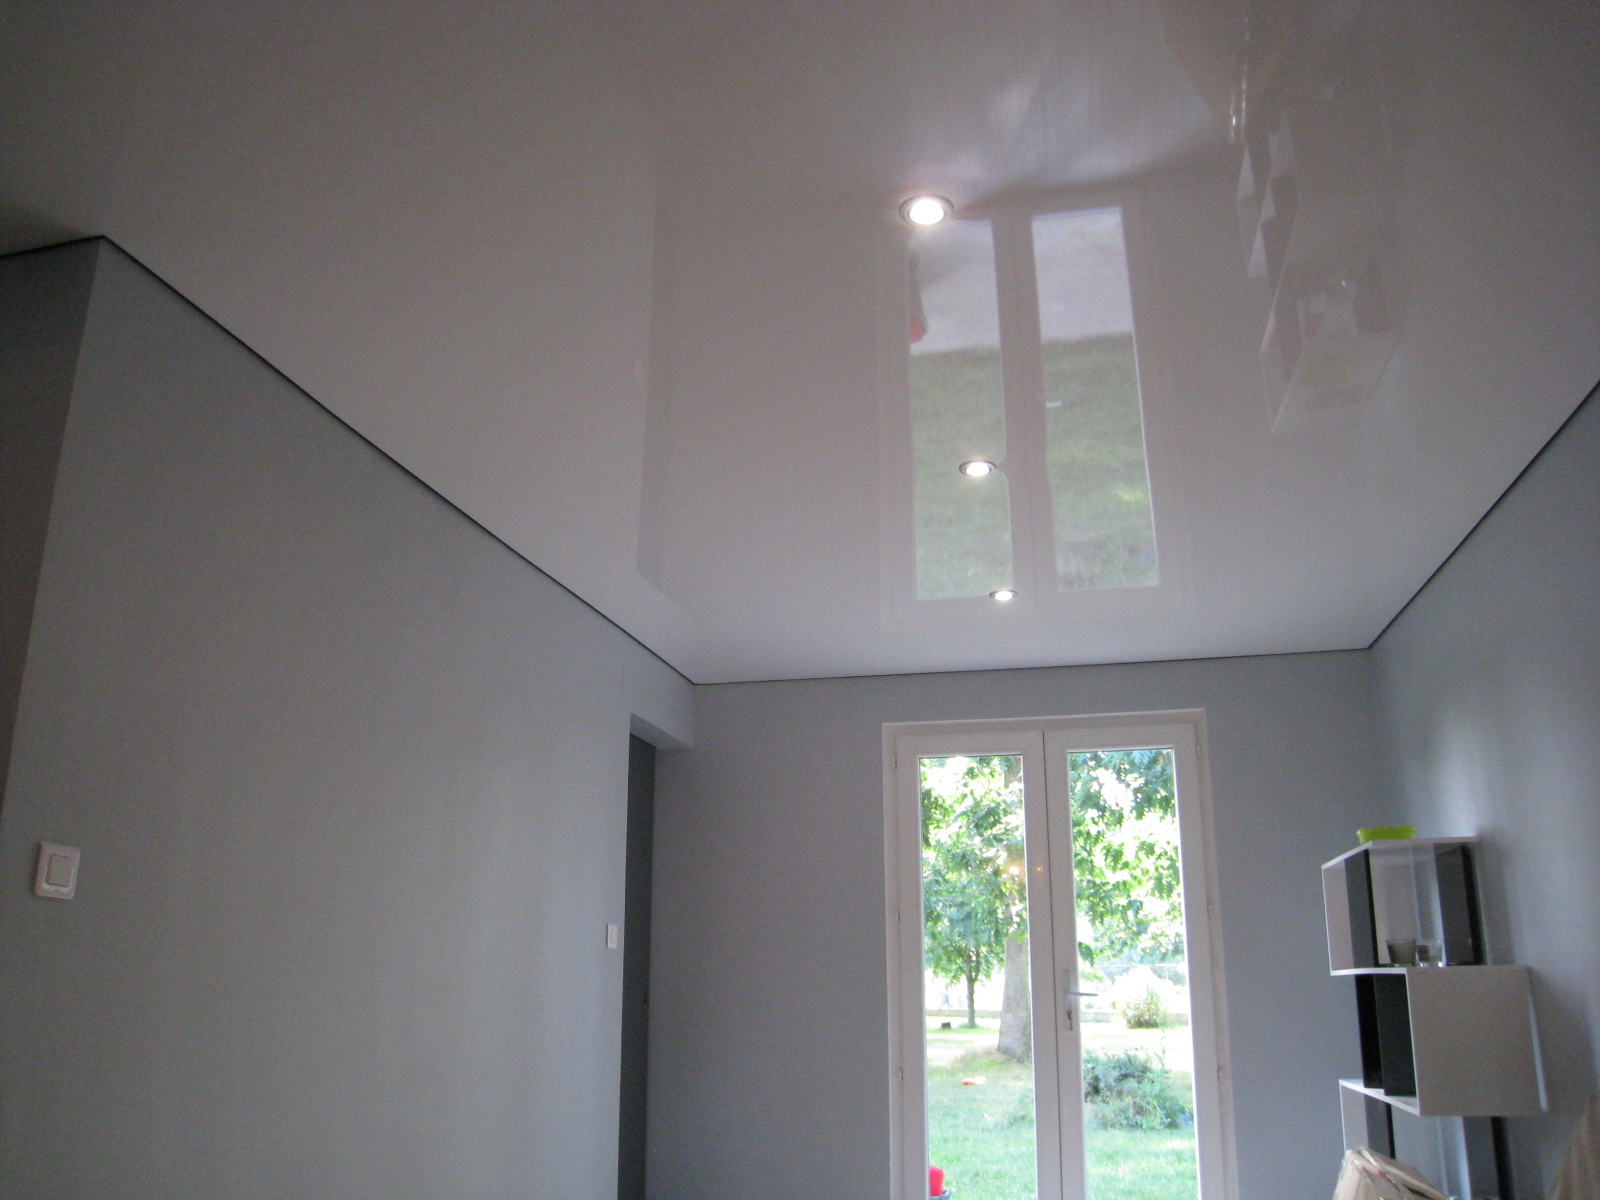 D coration r novation plafond tendu laqu by steeve mieulet for Faux plafond tendu